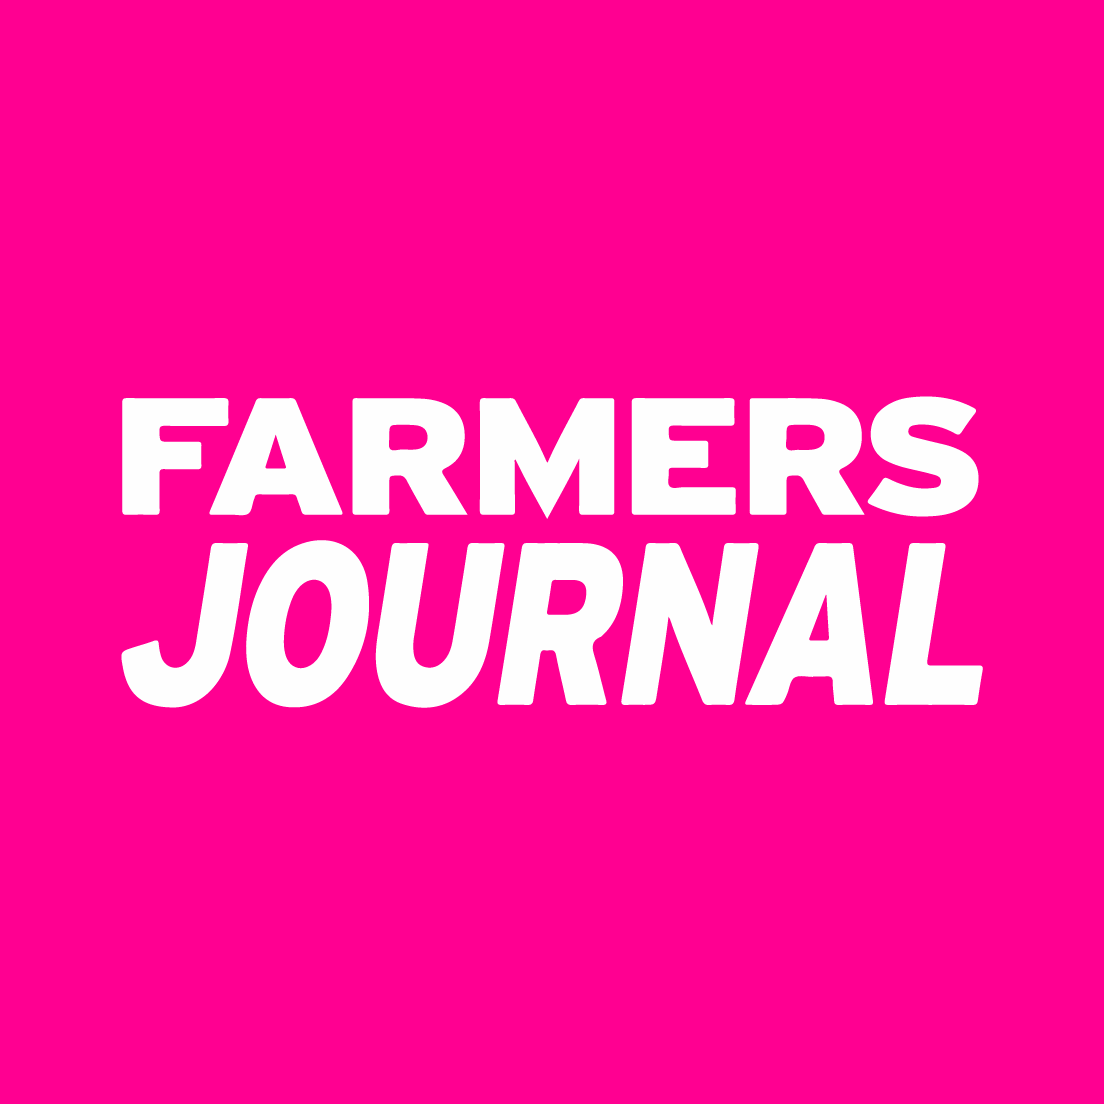 Irish Farmer Journal